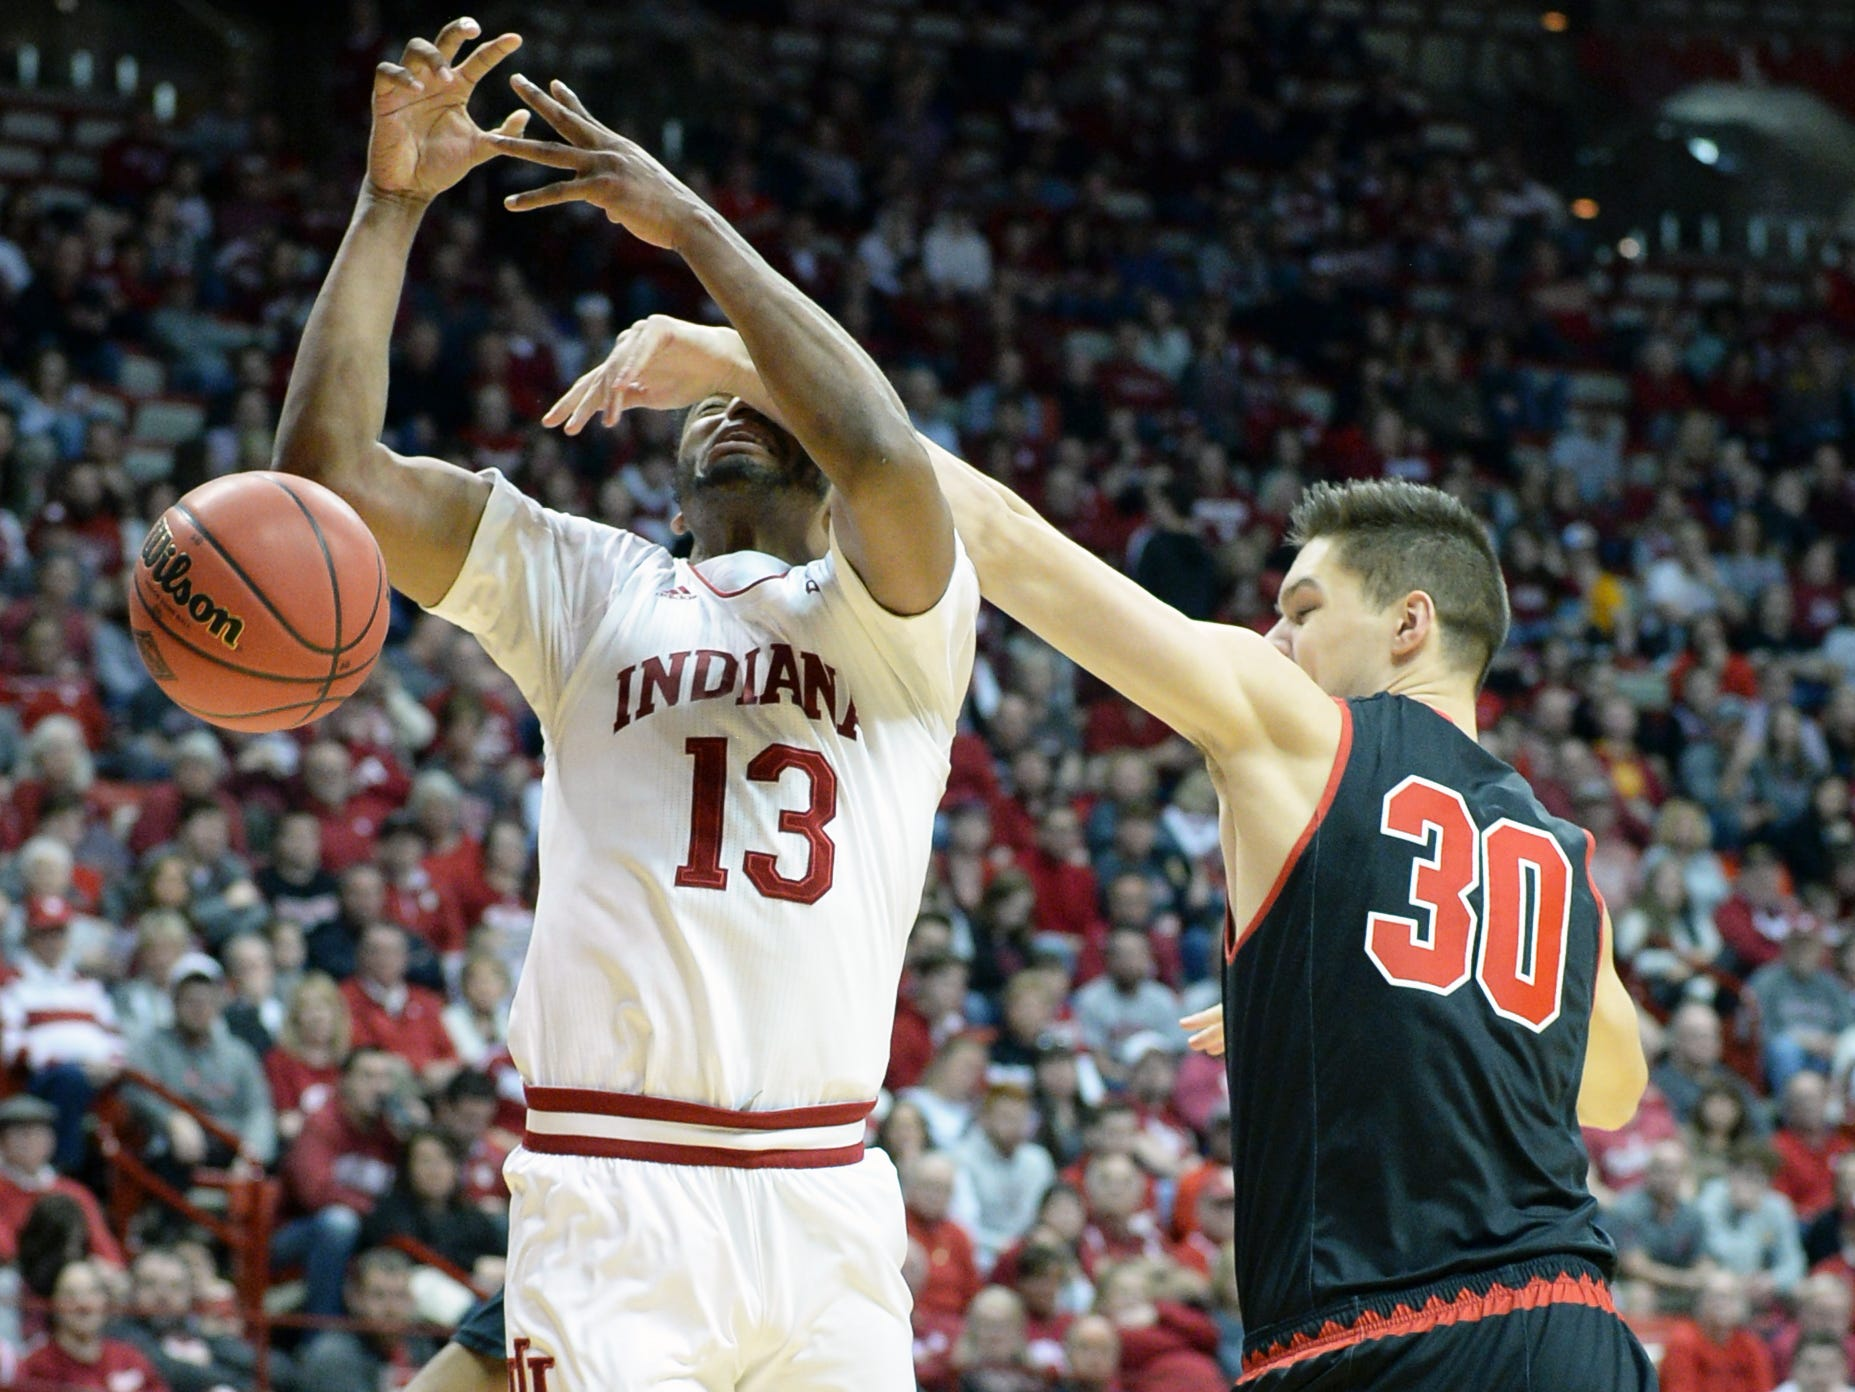 Indiana Hoosiers forward Juwan Morgan (13) is fouled while attempting a shot during the game against St. Francis (Pa.) at Simon Skjodt Assembly Hall in Bloomington Ind., on Tuesday, March 19, 2019.